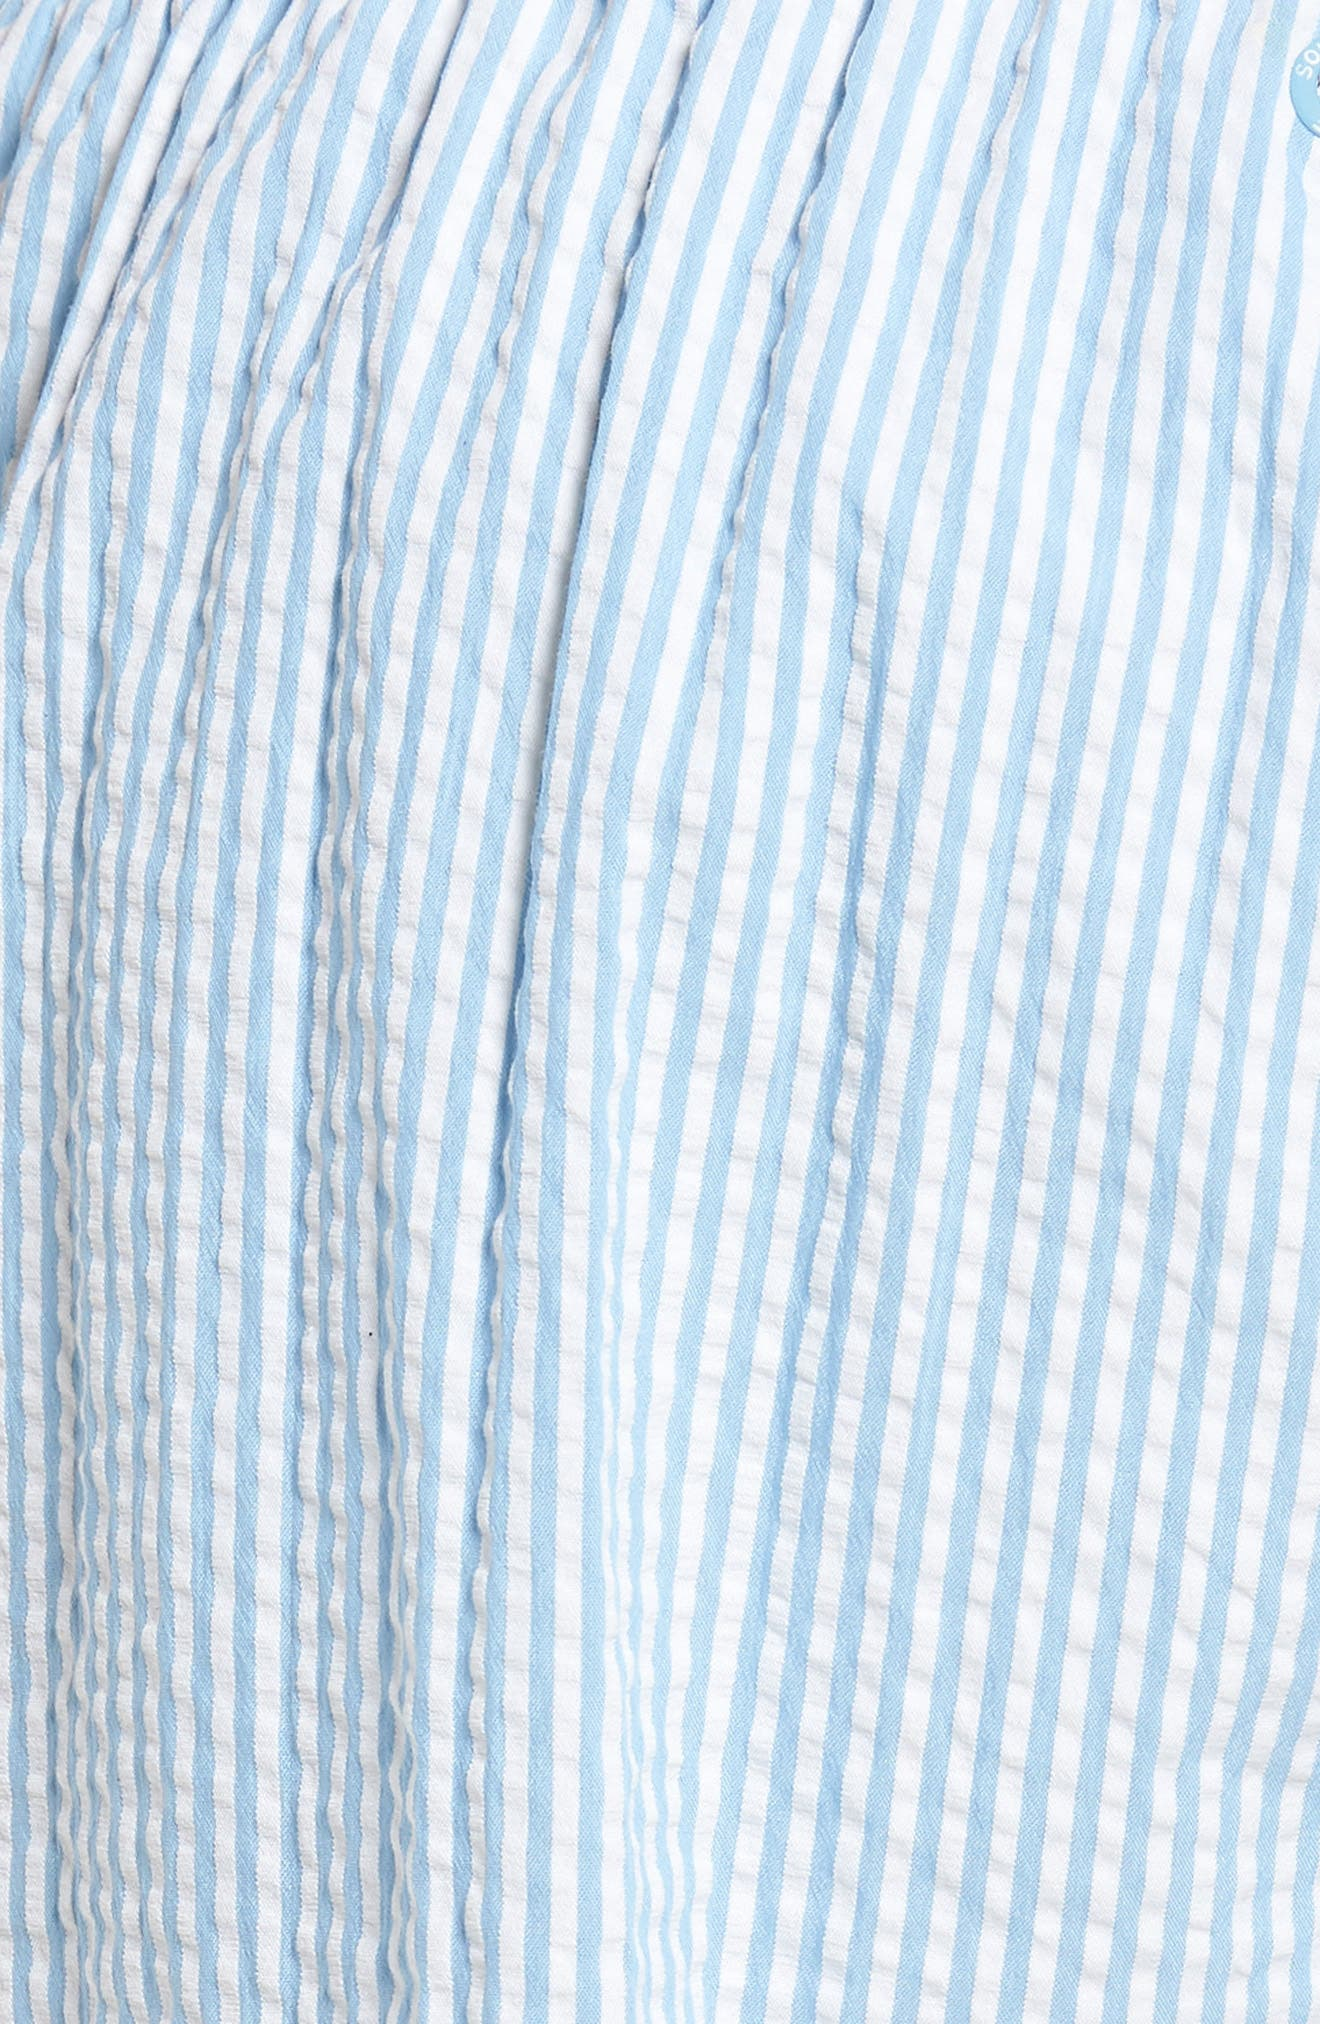 SOUTHERN TIDE,                             Seersucker Swim Trunks,                             Alternate thumbnail 5, color,                             392